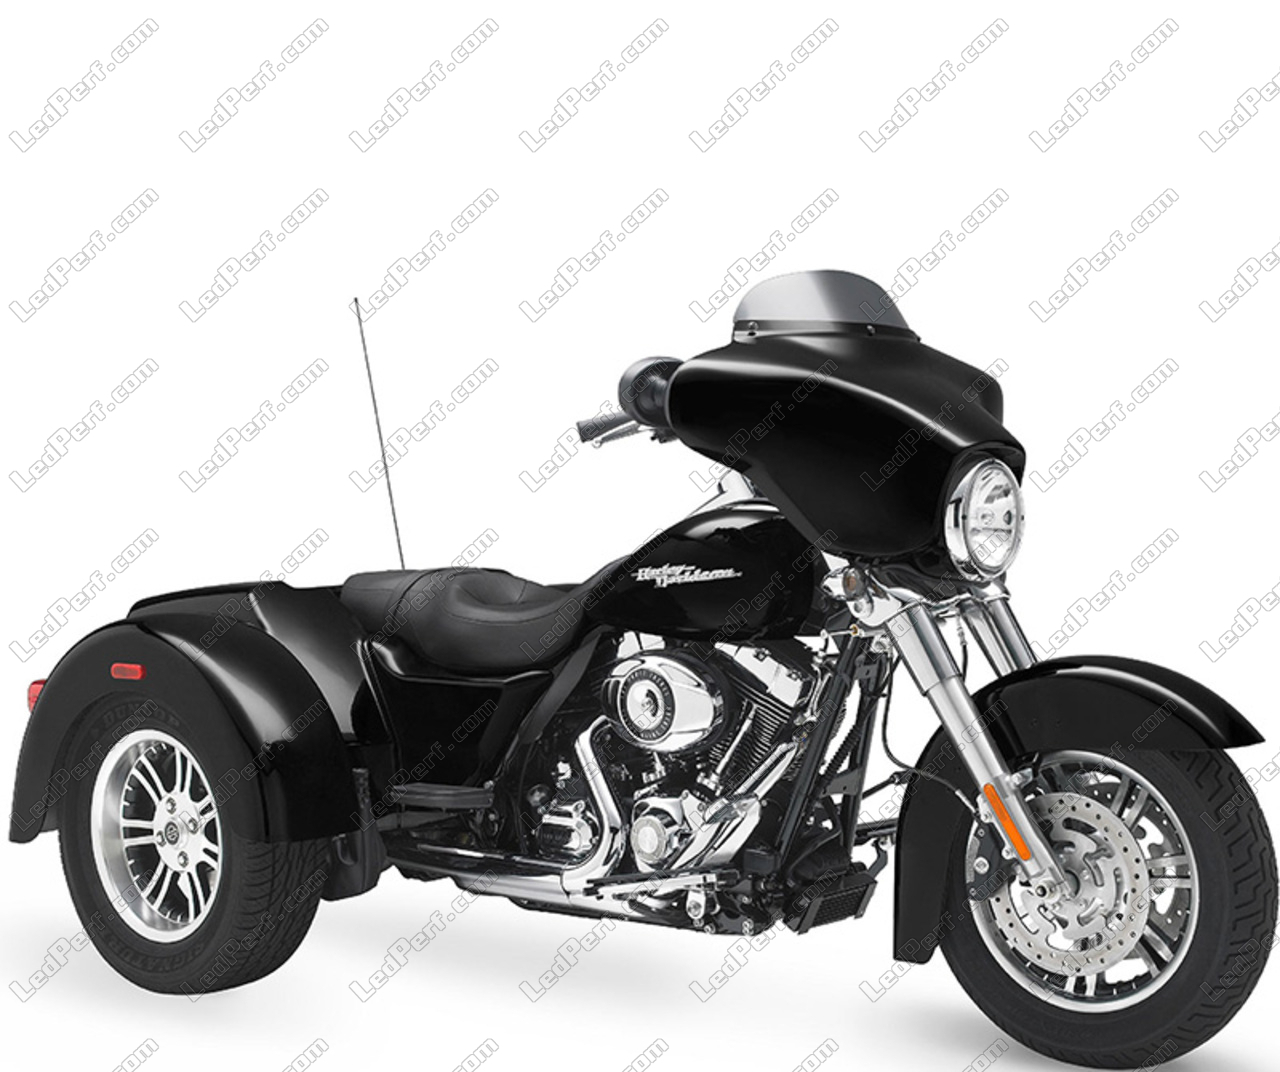 round led headlight for harley davidson street glide trike. Black Bedroom Furniture Sets. Home Design Ideas